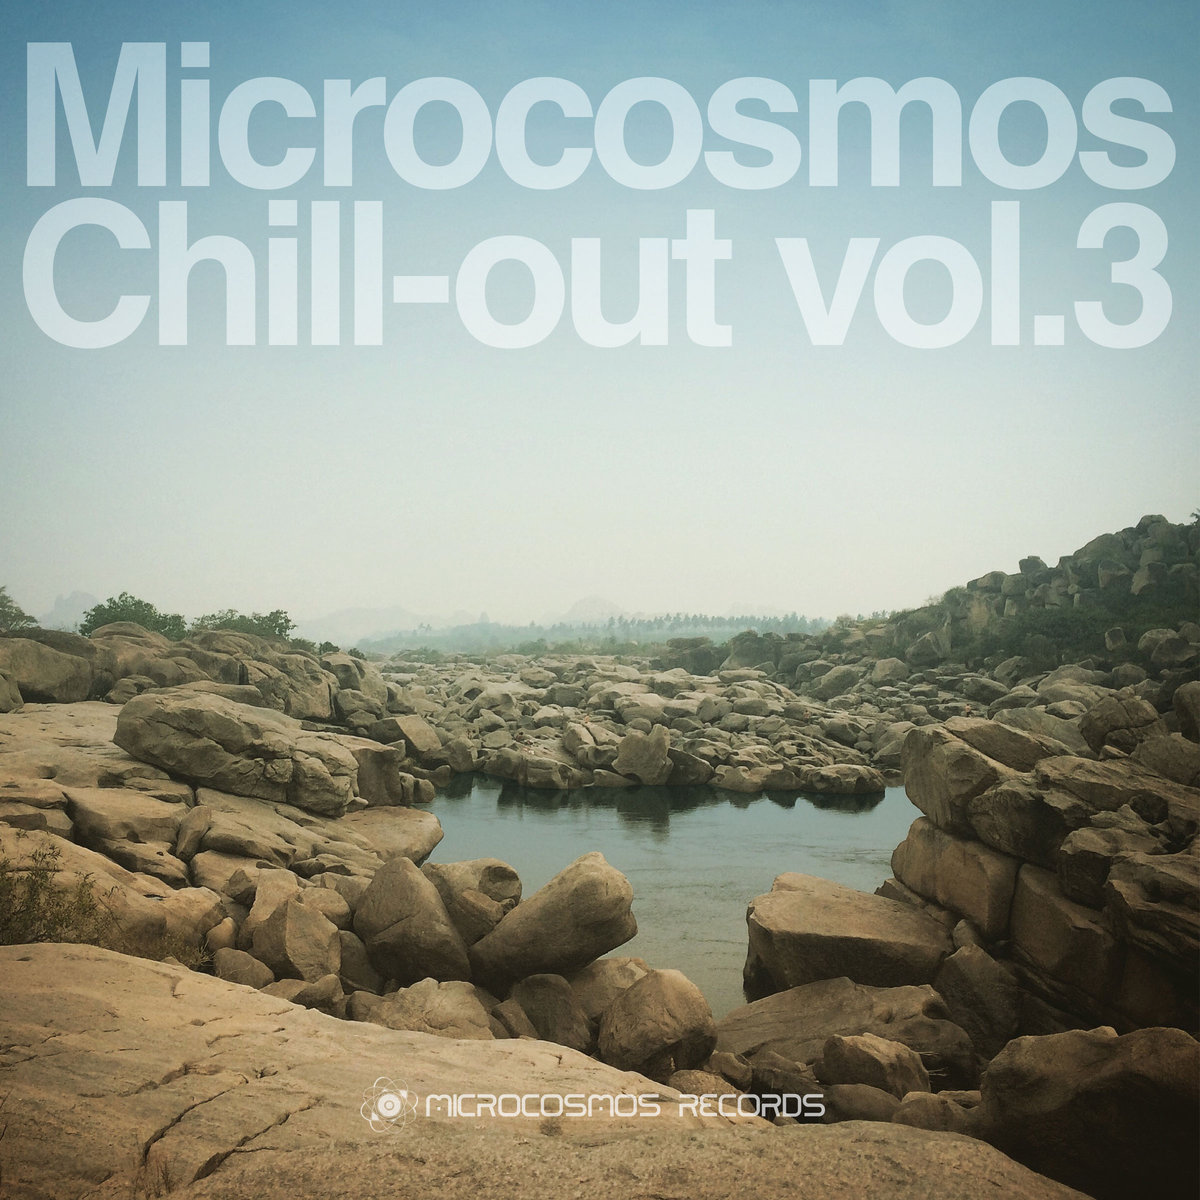 Chuzausen - Primitive Plus @ 'Microcosmos Chill-out Vol.3' album (ambient, chill-out)